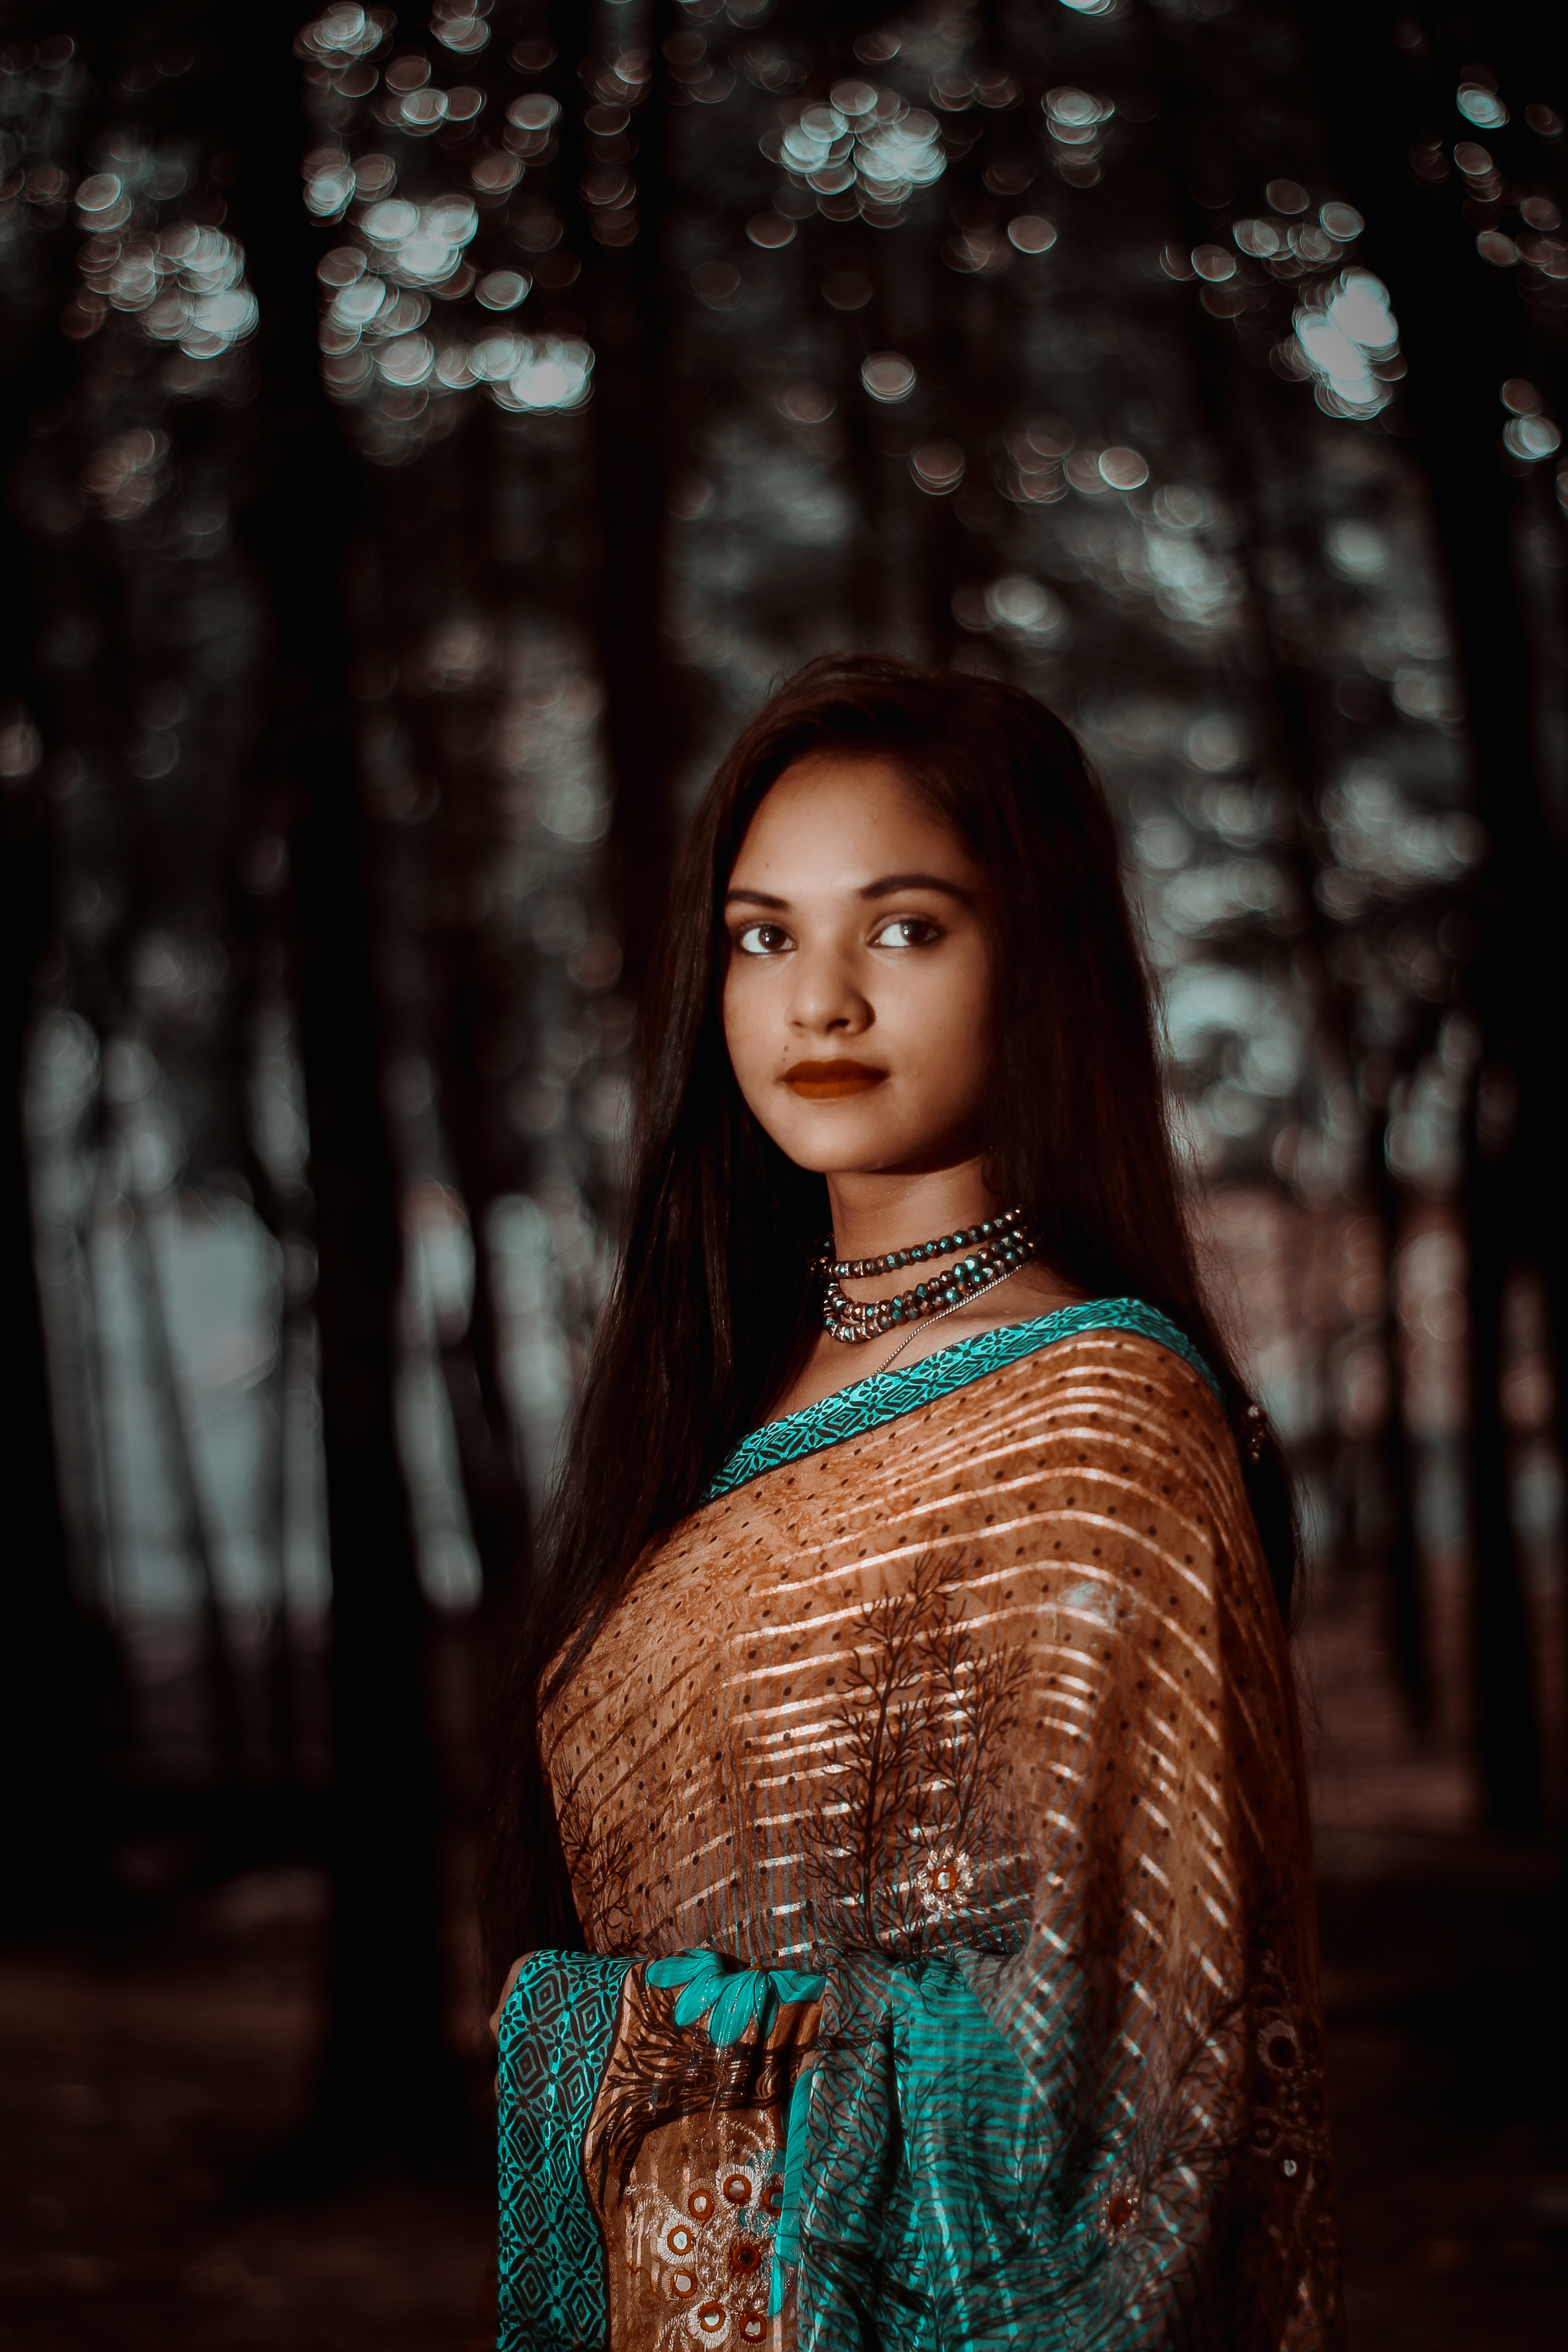 Selective Focus Photo Of Standing Woman In Saree Dress Posing With Trees In The Background Free Stock Photo Photoshoot at home saree poses indoor selfie poses in saree photoshoot poses for girls in saree follow me on facebook. https www pexels com photo selective focus photo of standing woman in saree dress posing with trees in the background 2784078